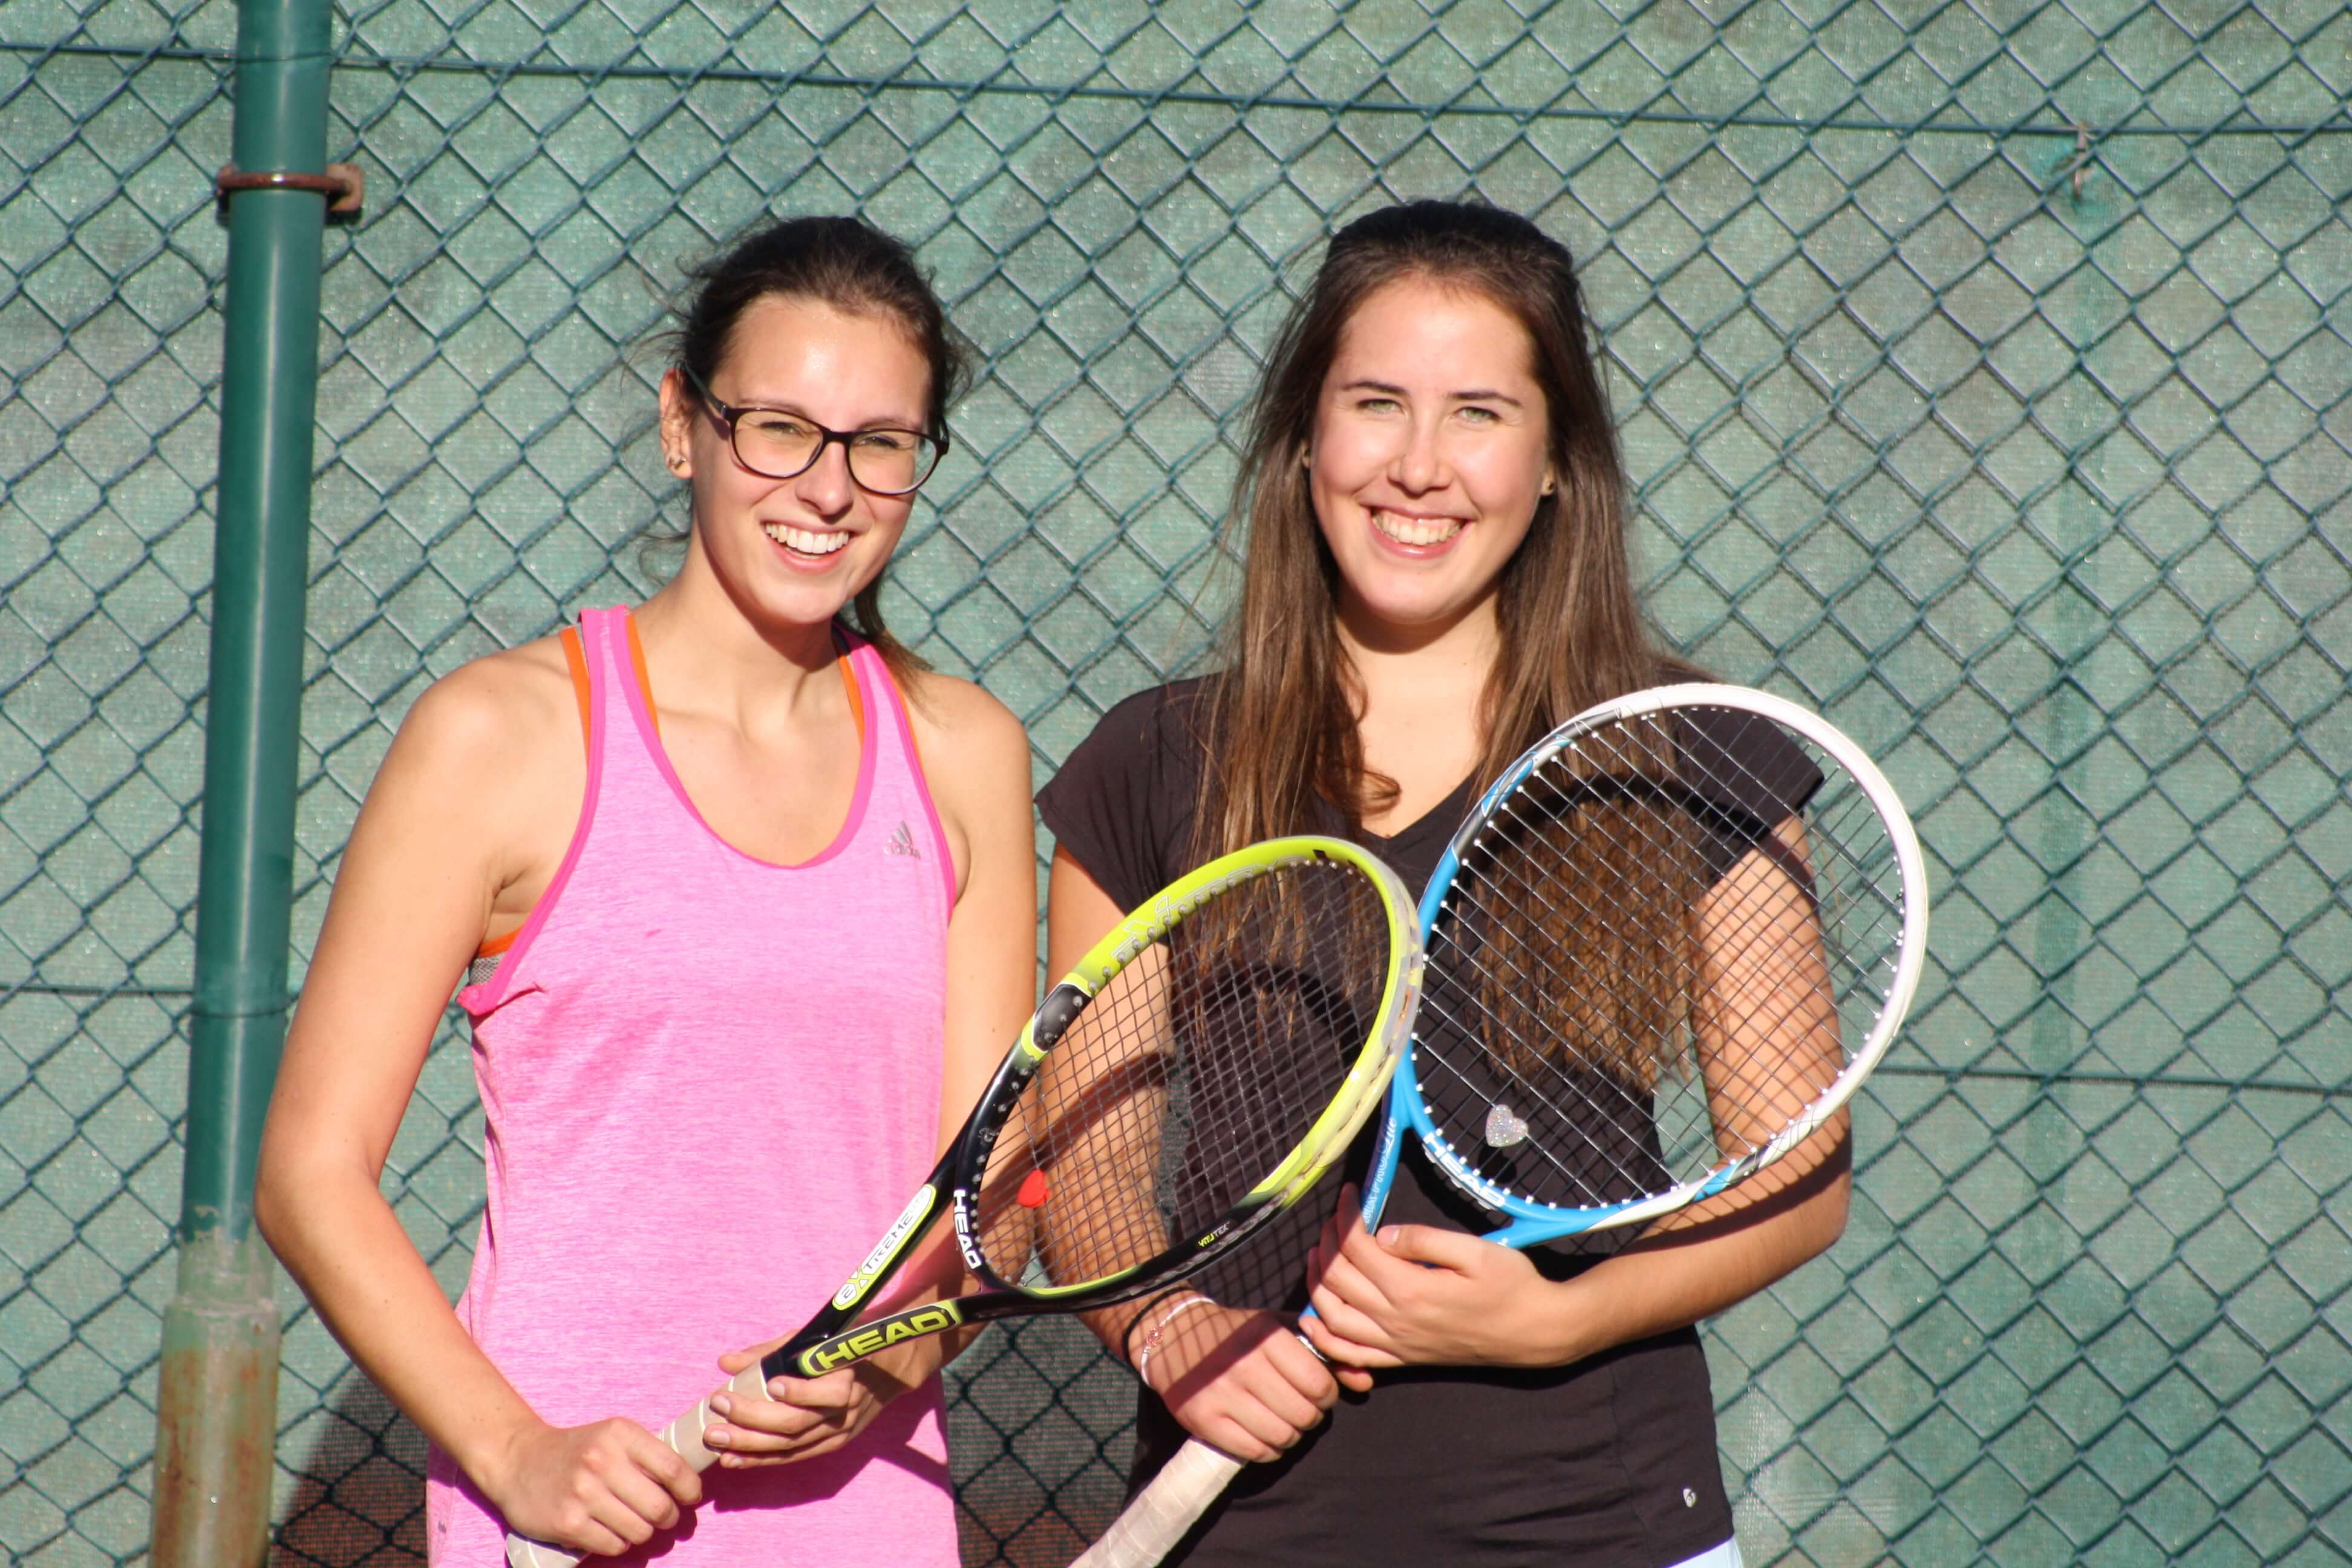 Tennisfotos